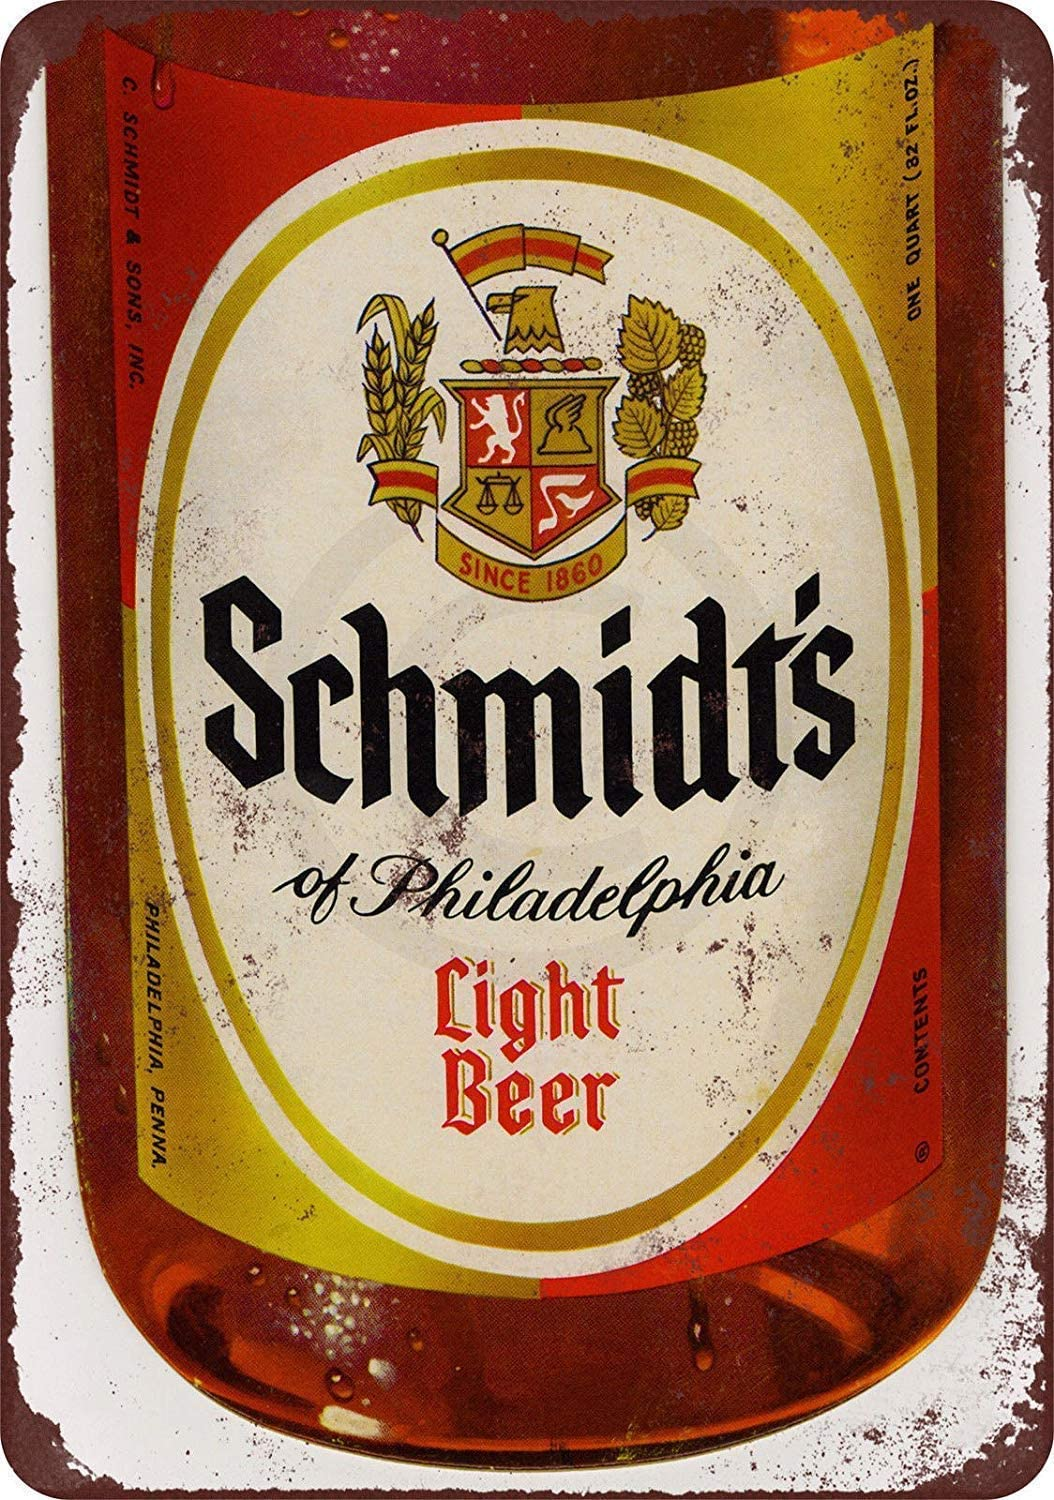 INNAPER Funny Retro Wall Décor Tin Sign for Home Schmidt's Light Beer Rustic Vintage Aluminum Metal Sign 8x12 Inches (YHA095)